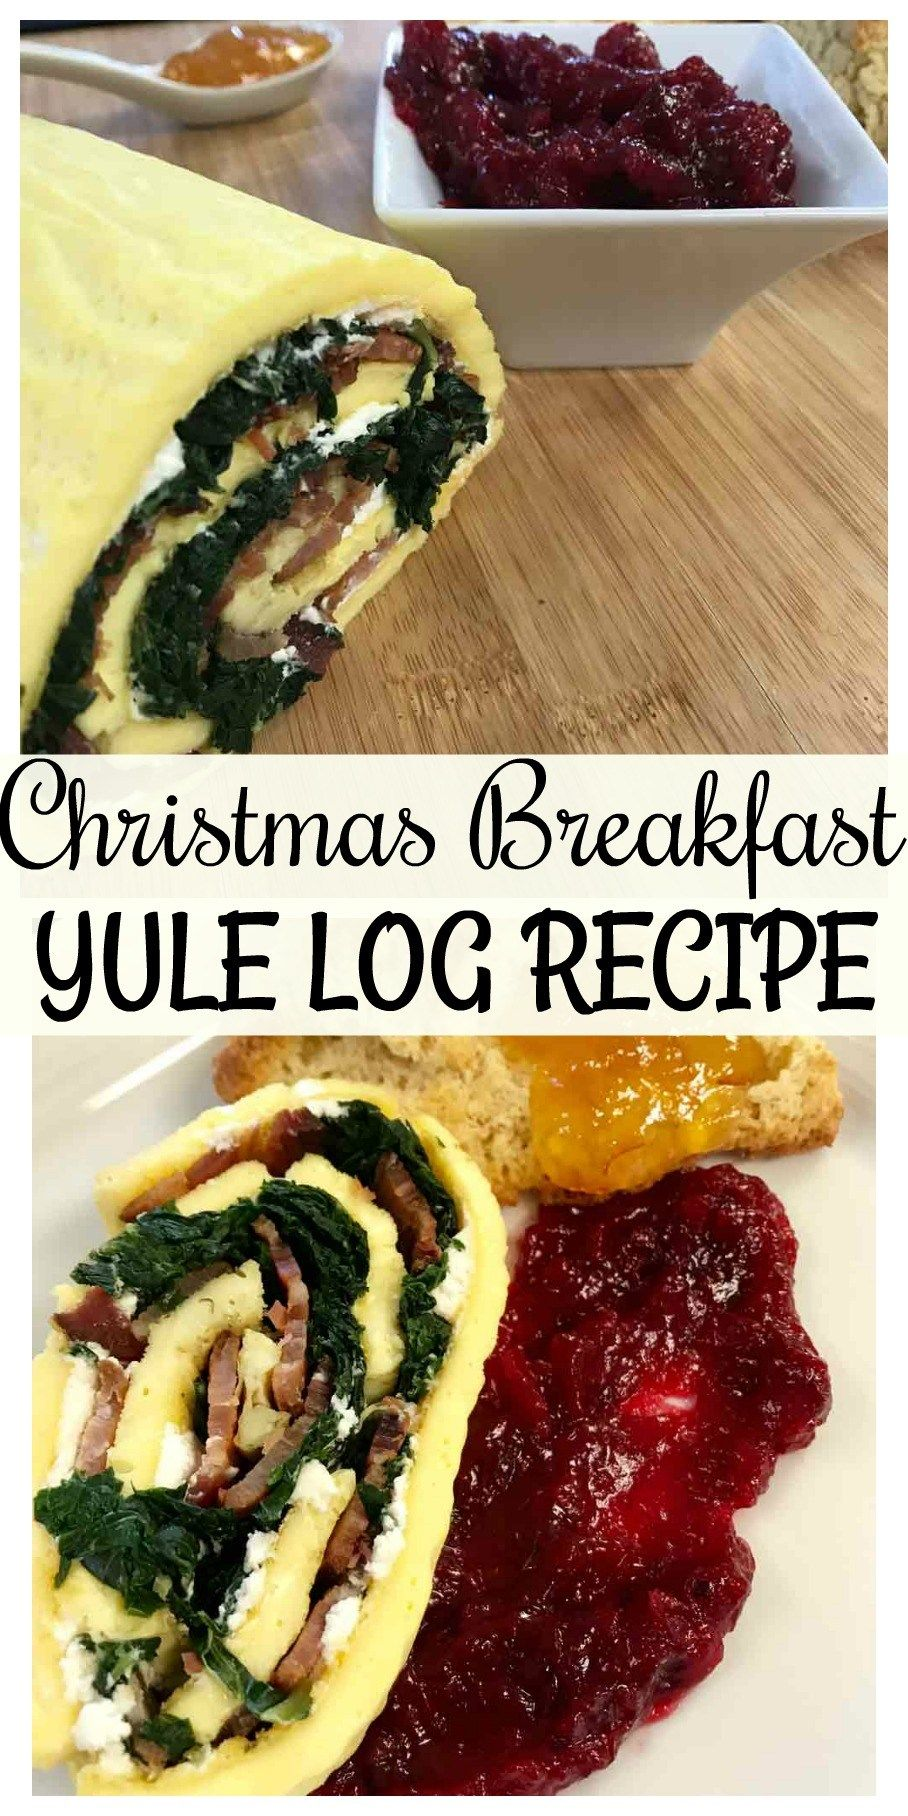 Delicious Christmas Breakfast Recipe - Shop With Me Mama